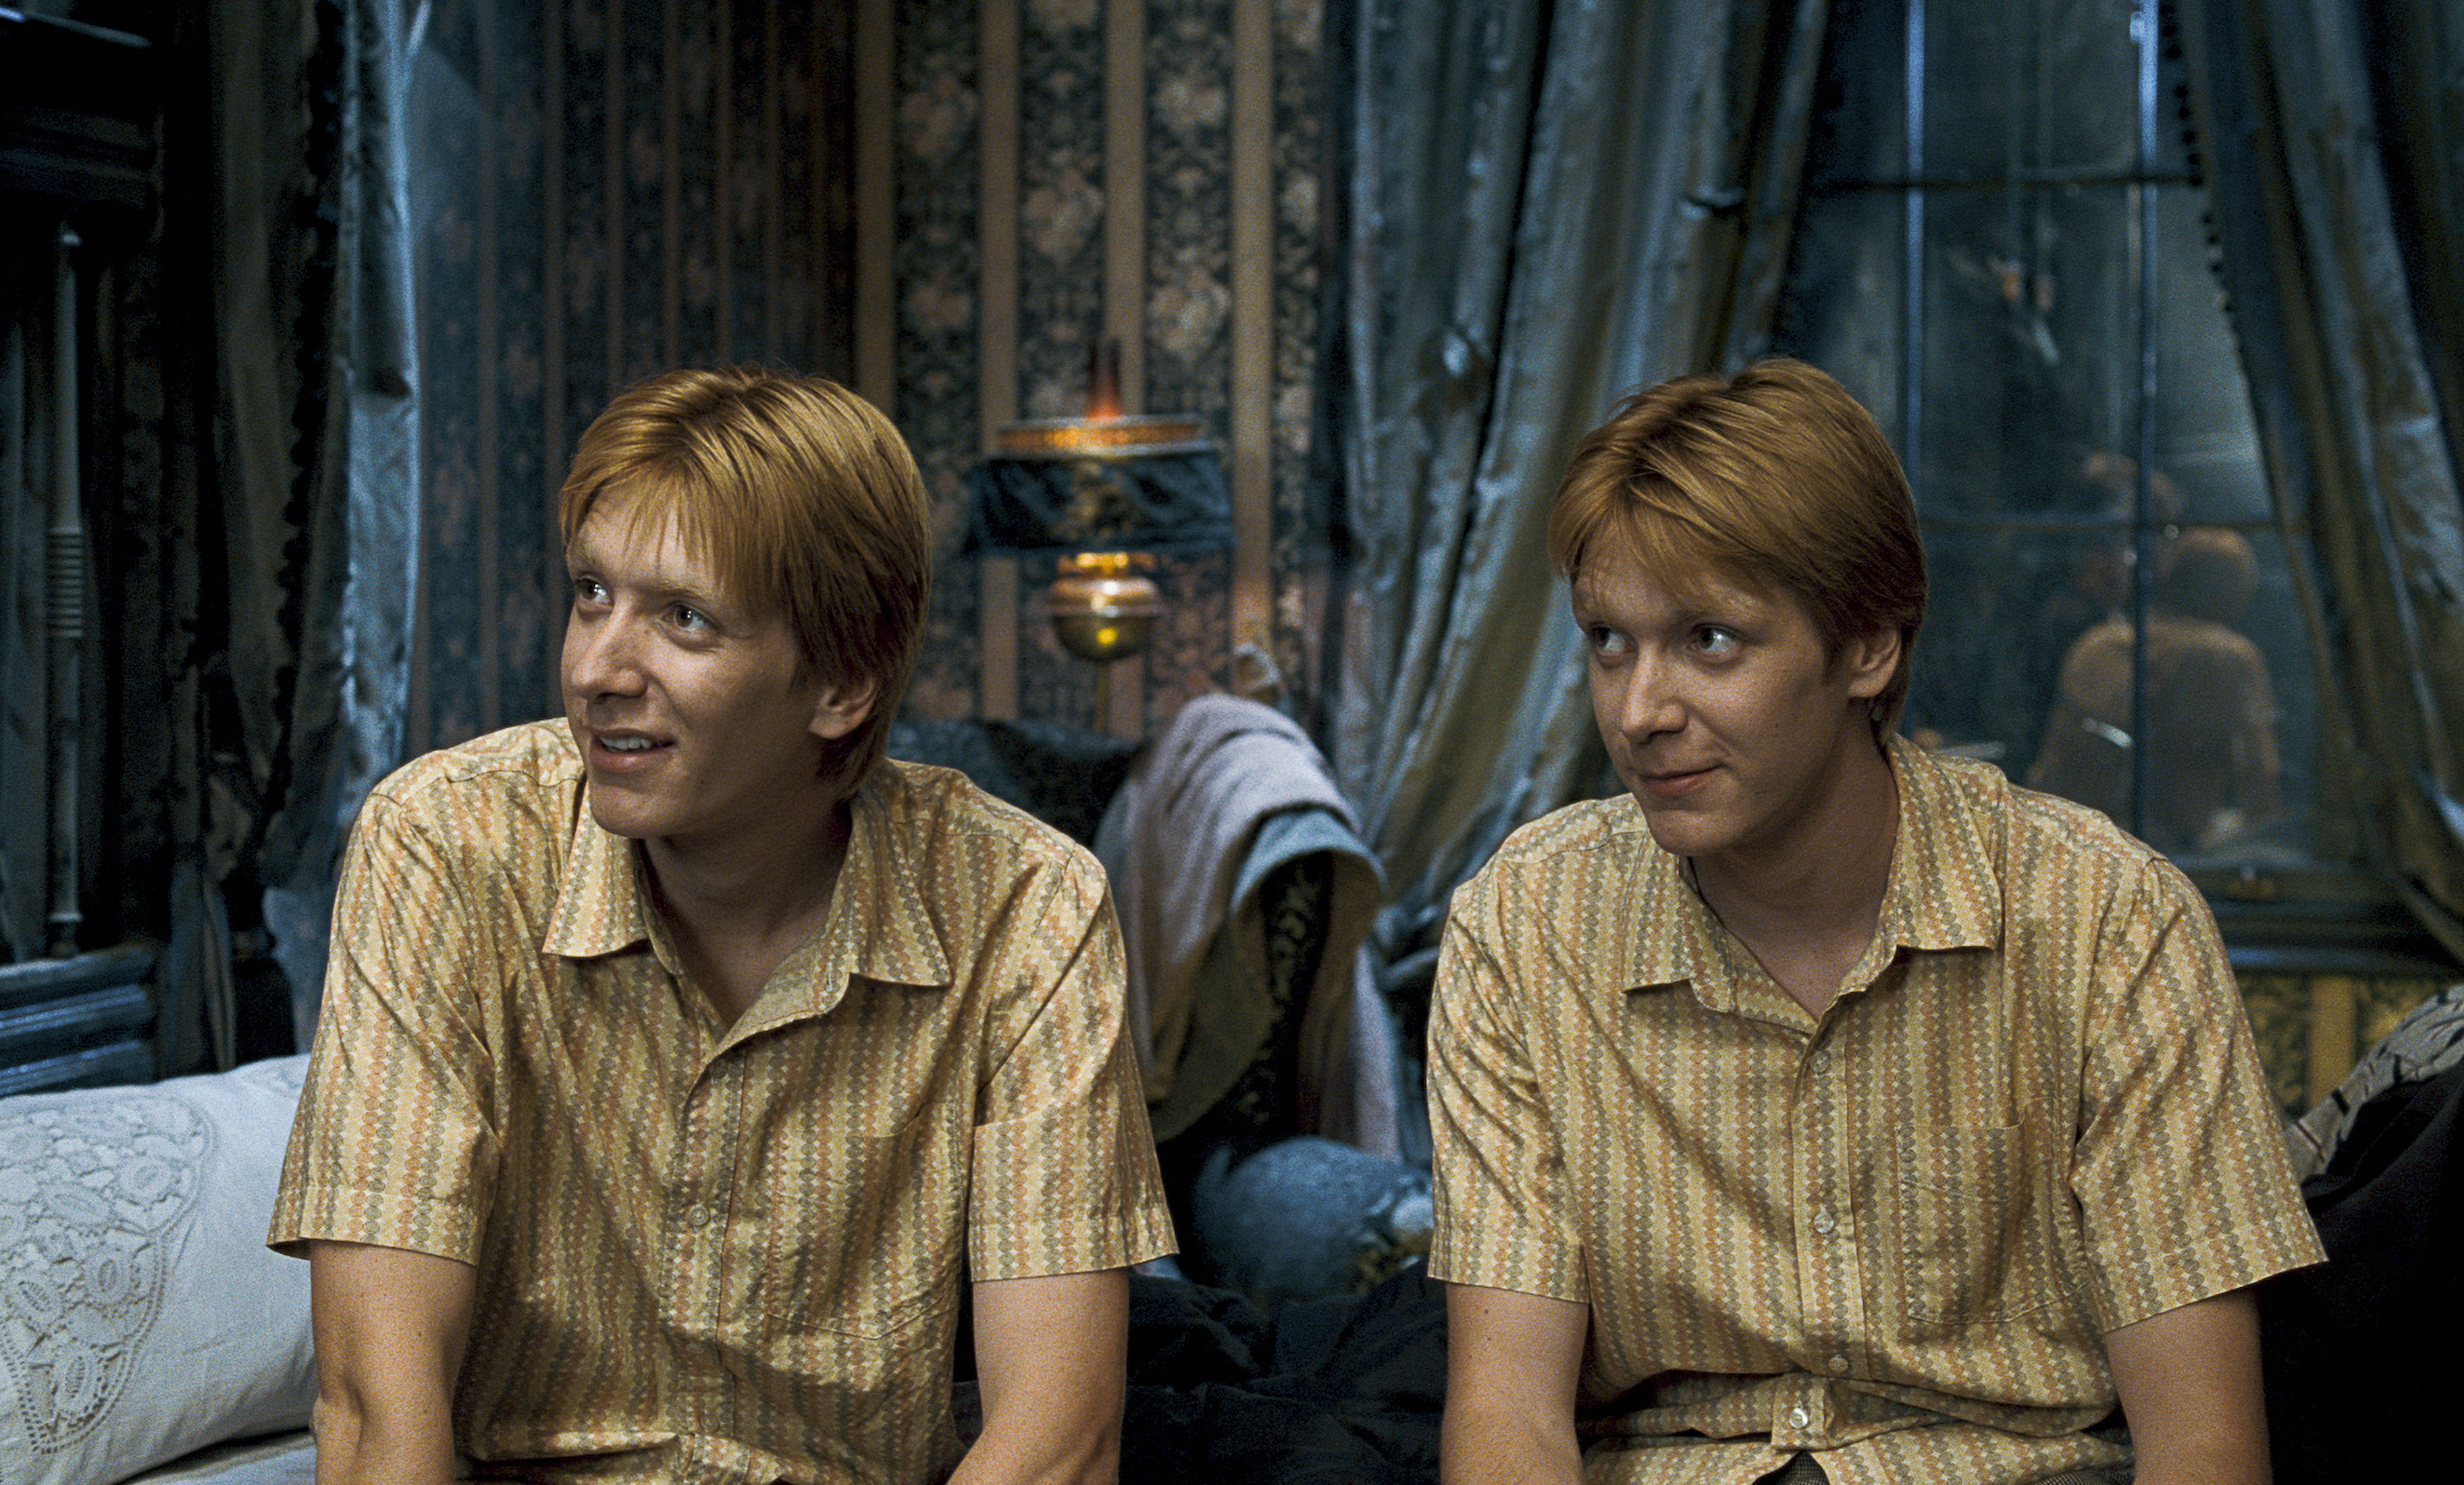 The differences between Fred and George Weasley - Pottermore